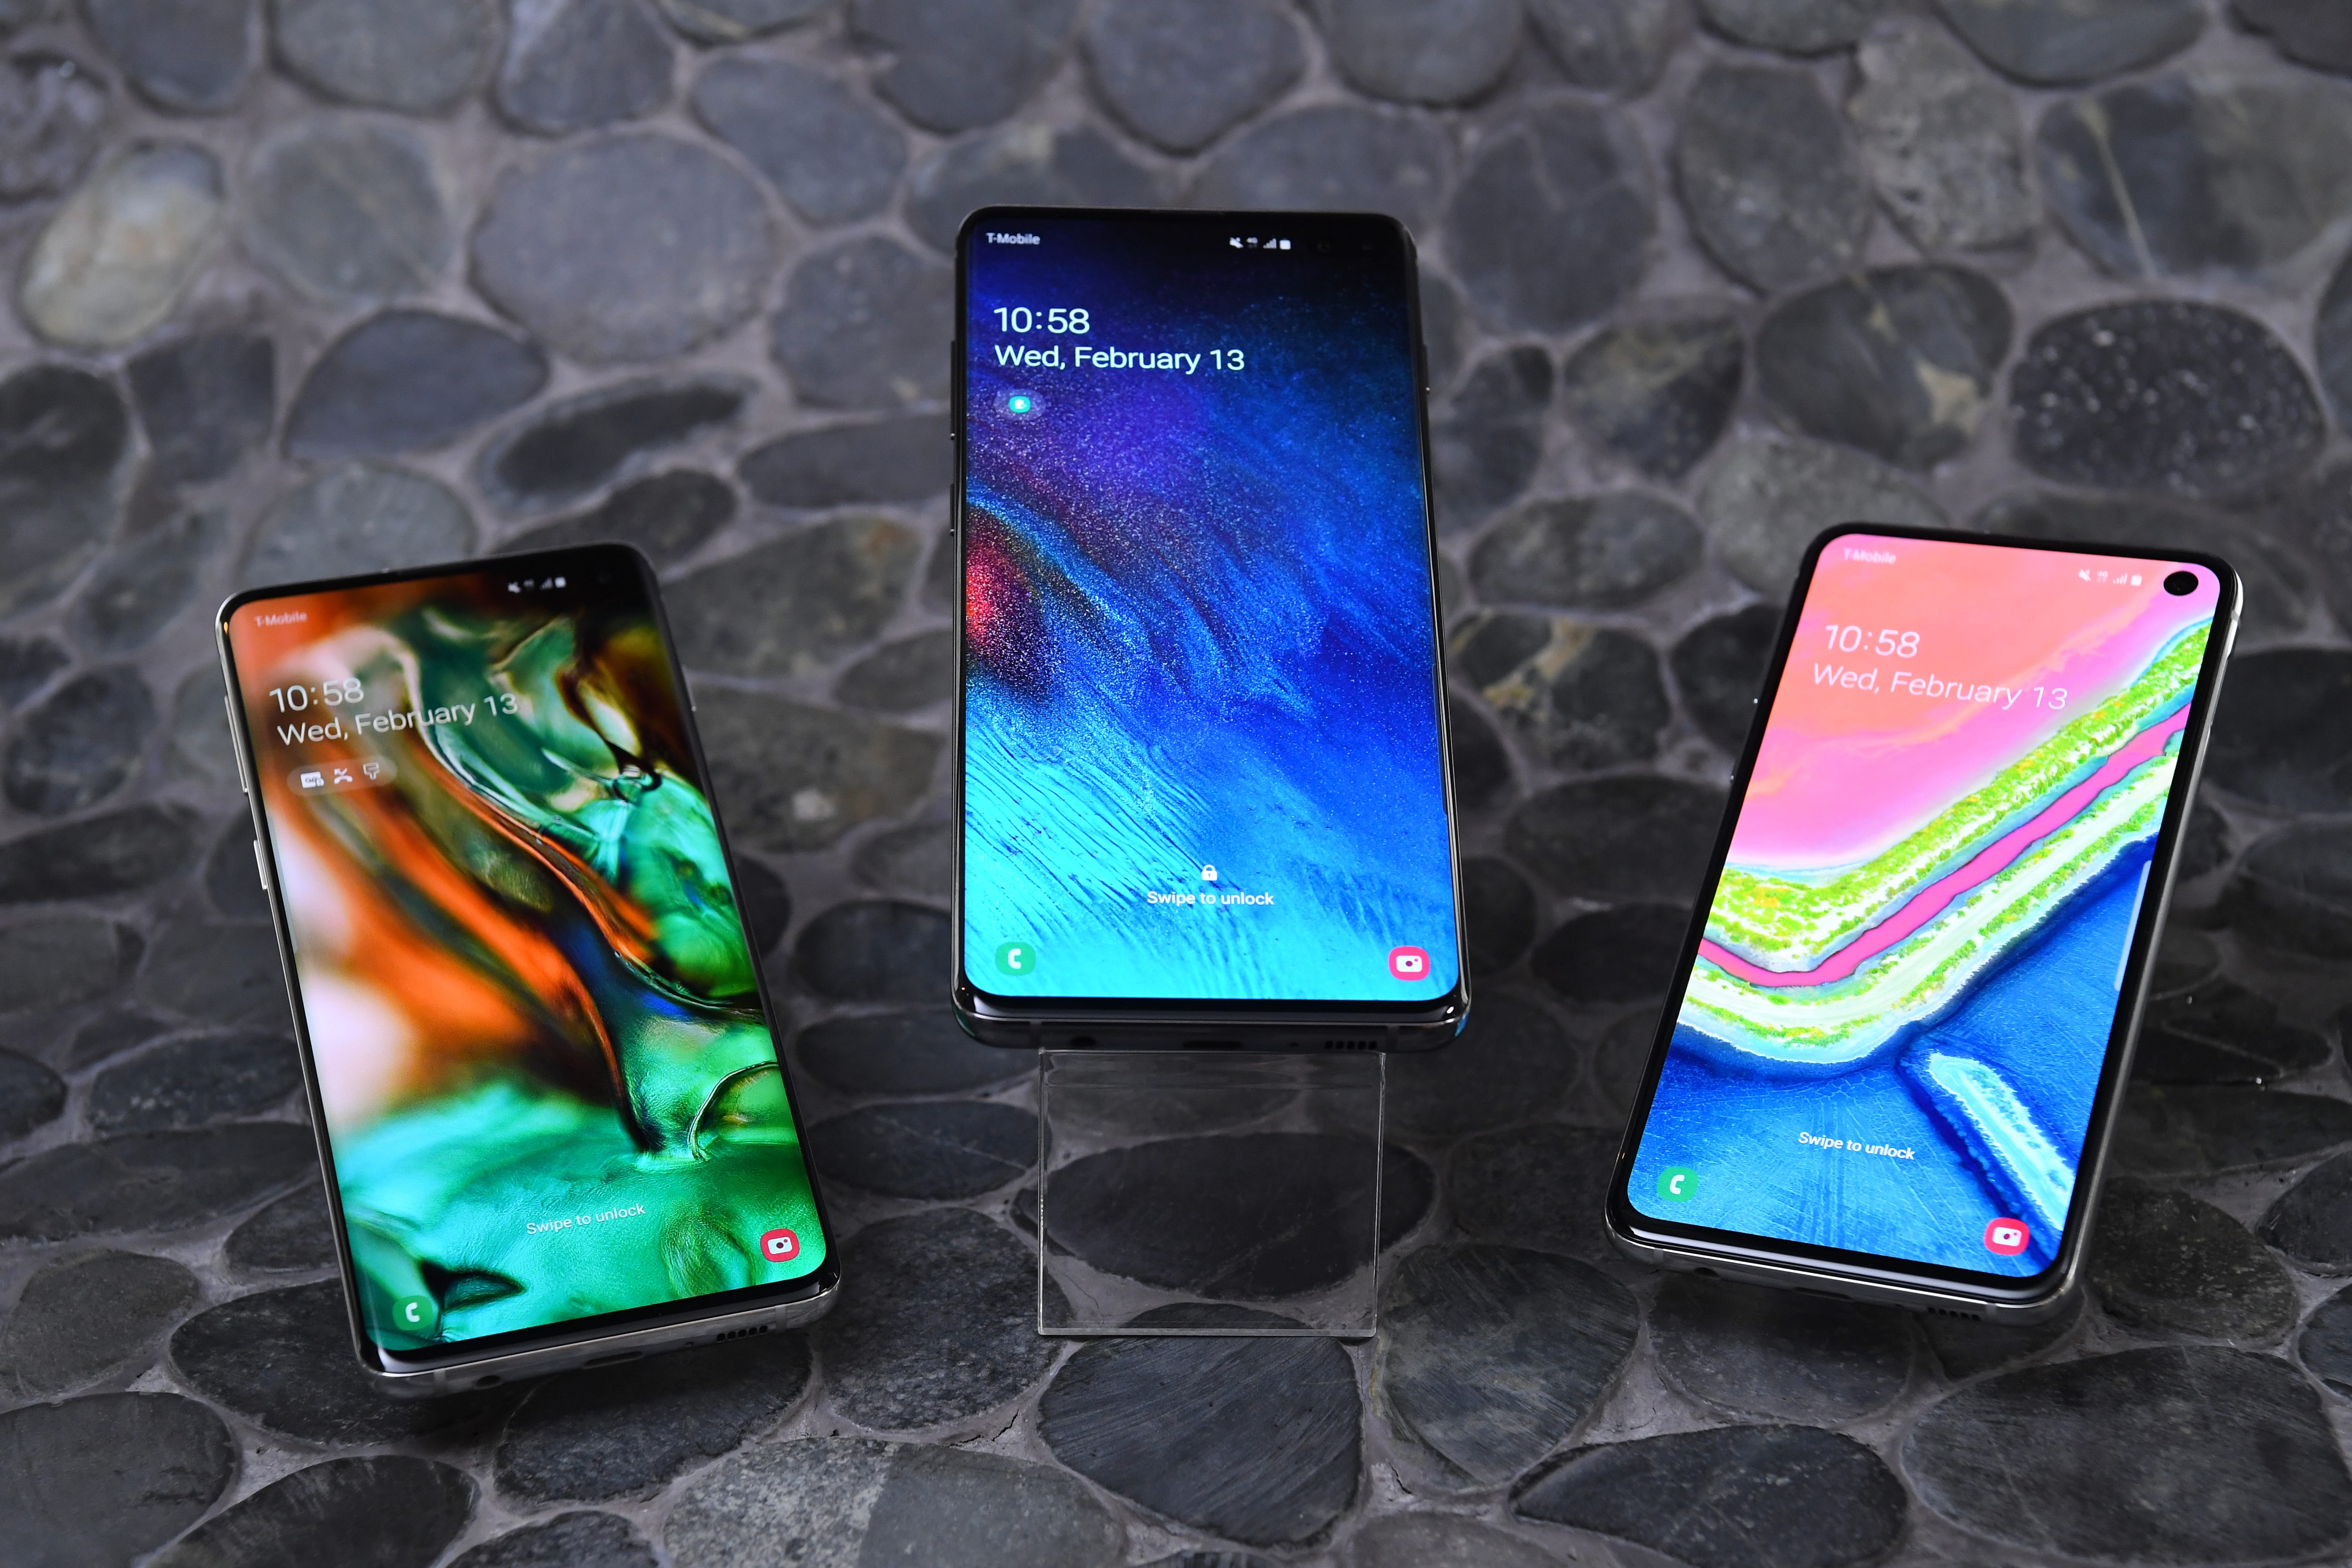 First look: Samsung's Galaxy S10 line goes big for tenth anniversary